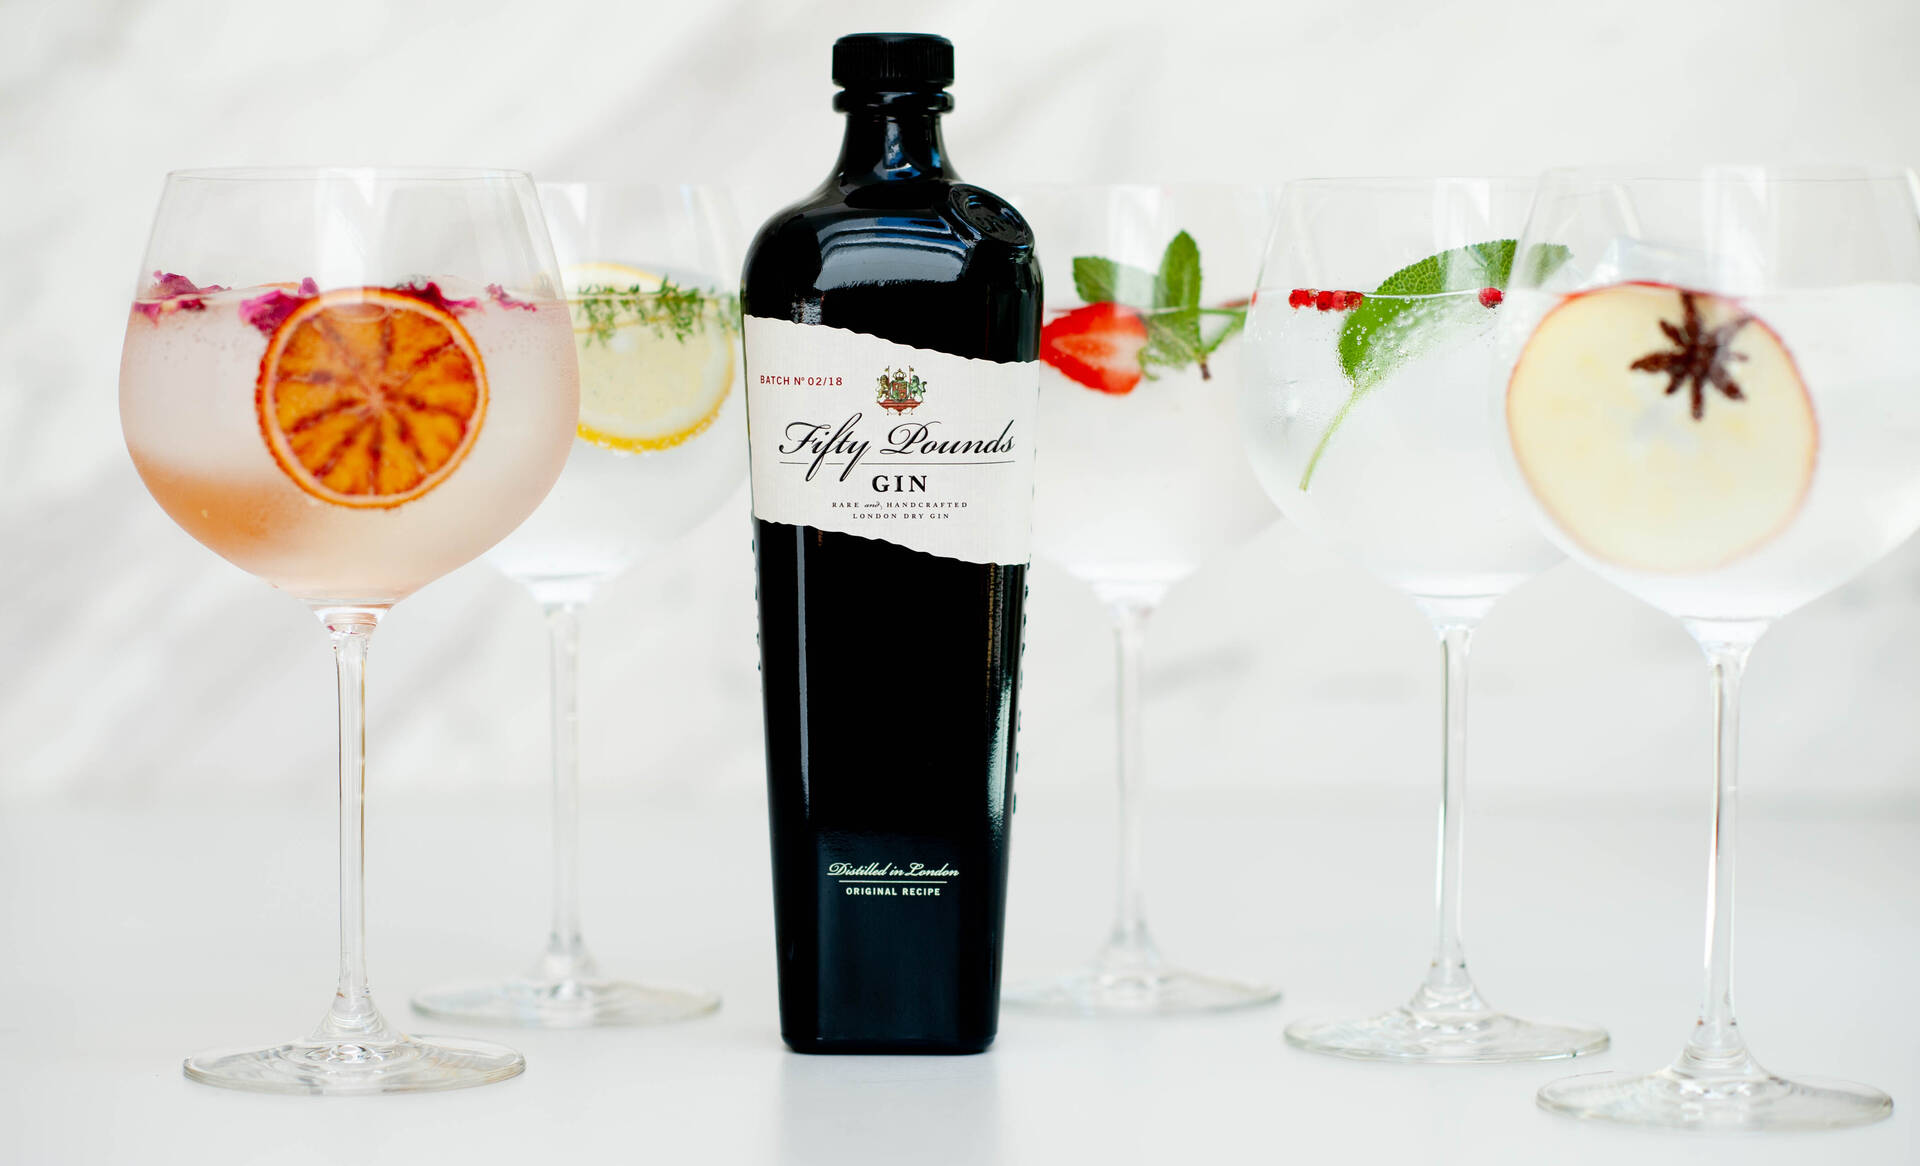 fifty pound gin adjusted